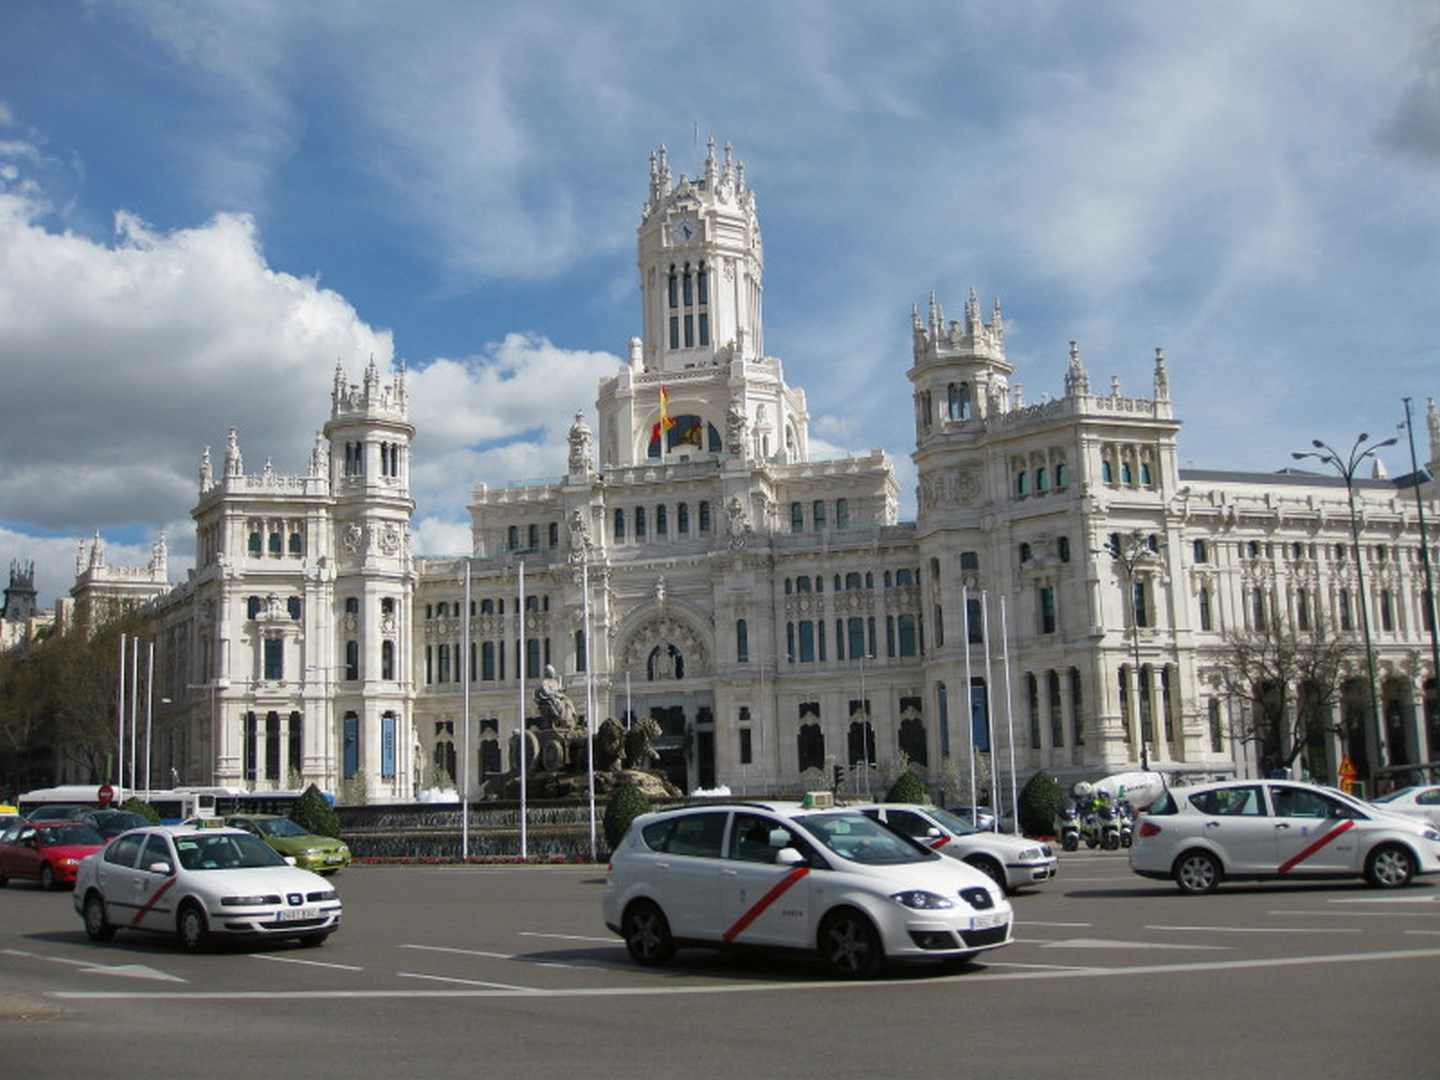 The Palace with the Cibeles Fountain in front